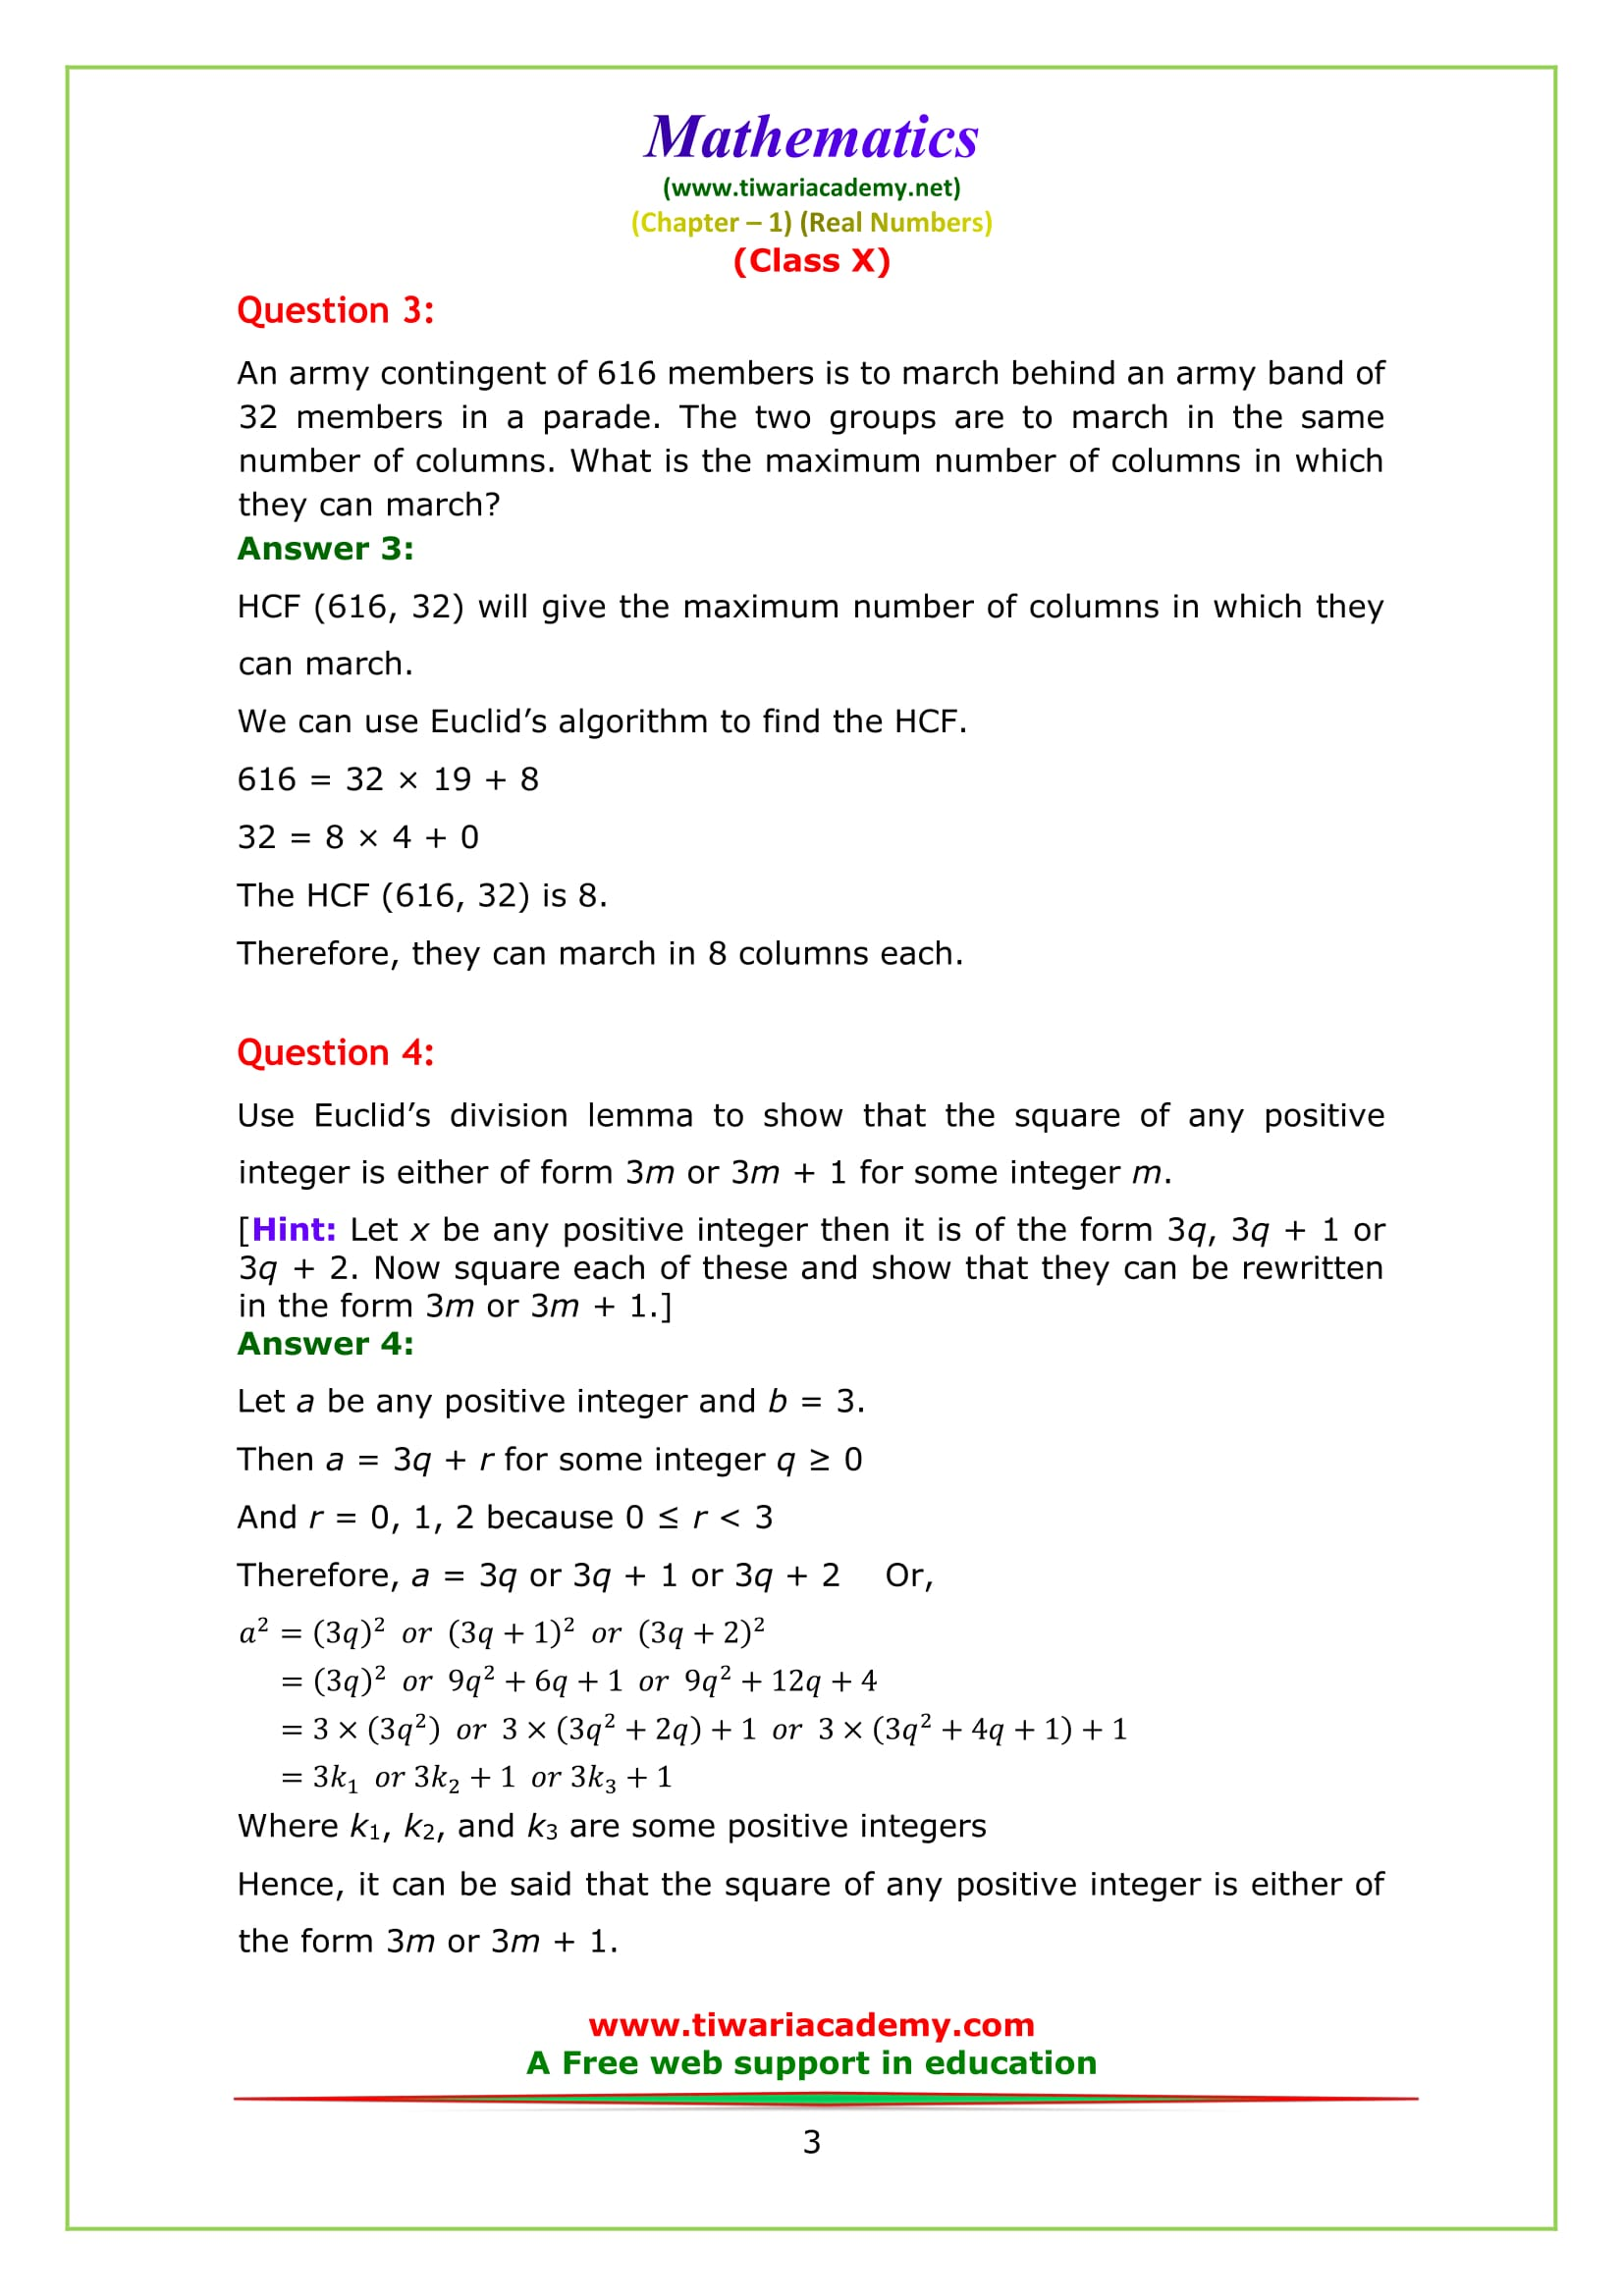 NCERT Solutions for Class 10 Maths Chapter 1 Exercise 1.1 Question 3 & 4